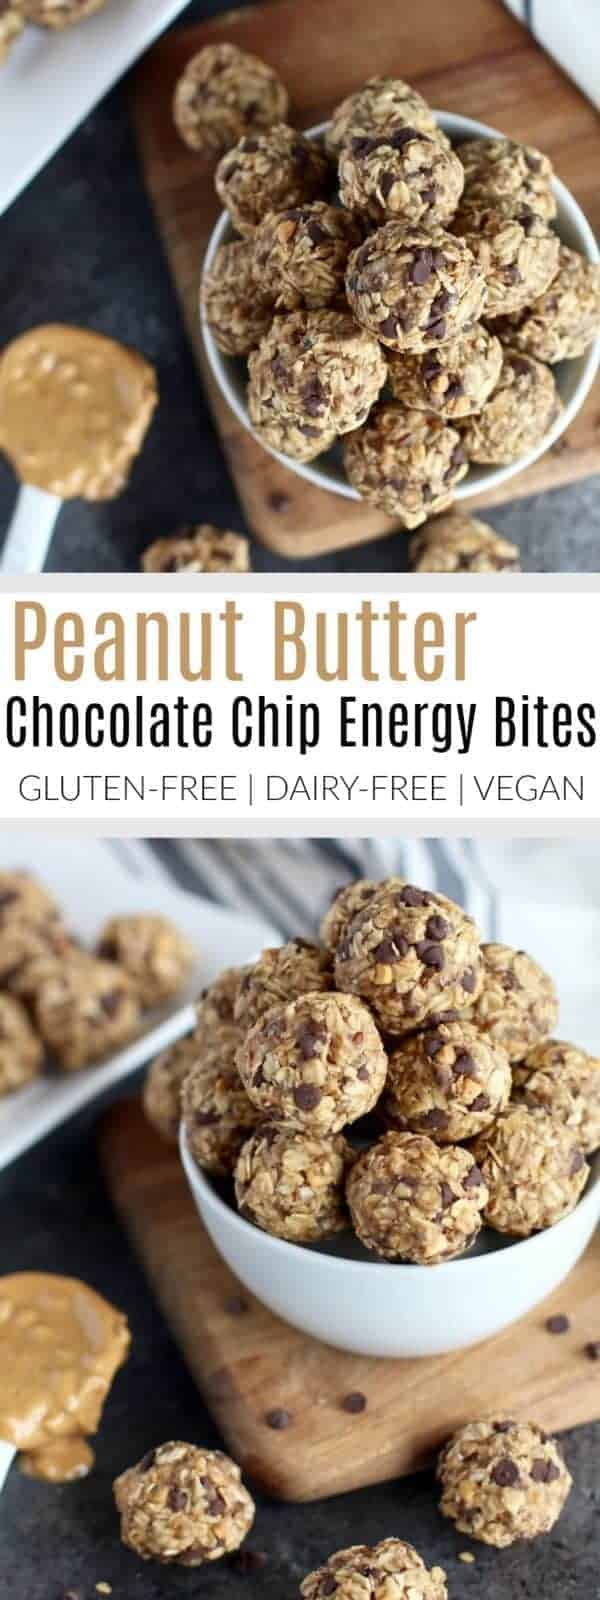 Peanut butter and chocolate come together with whole grain oats, flax and chia seeds in these Peanut butter Chocolate Chip Energy Bites. A healthy gluten-free, dairy-free, vegan-friendly snack or pre-workout fuel. | The Real Food Dietitians | http://therealfoodrds.com/peanut-butter-chocolate-chip-energy-bites/